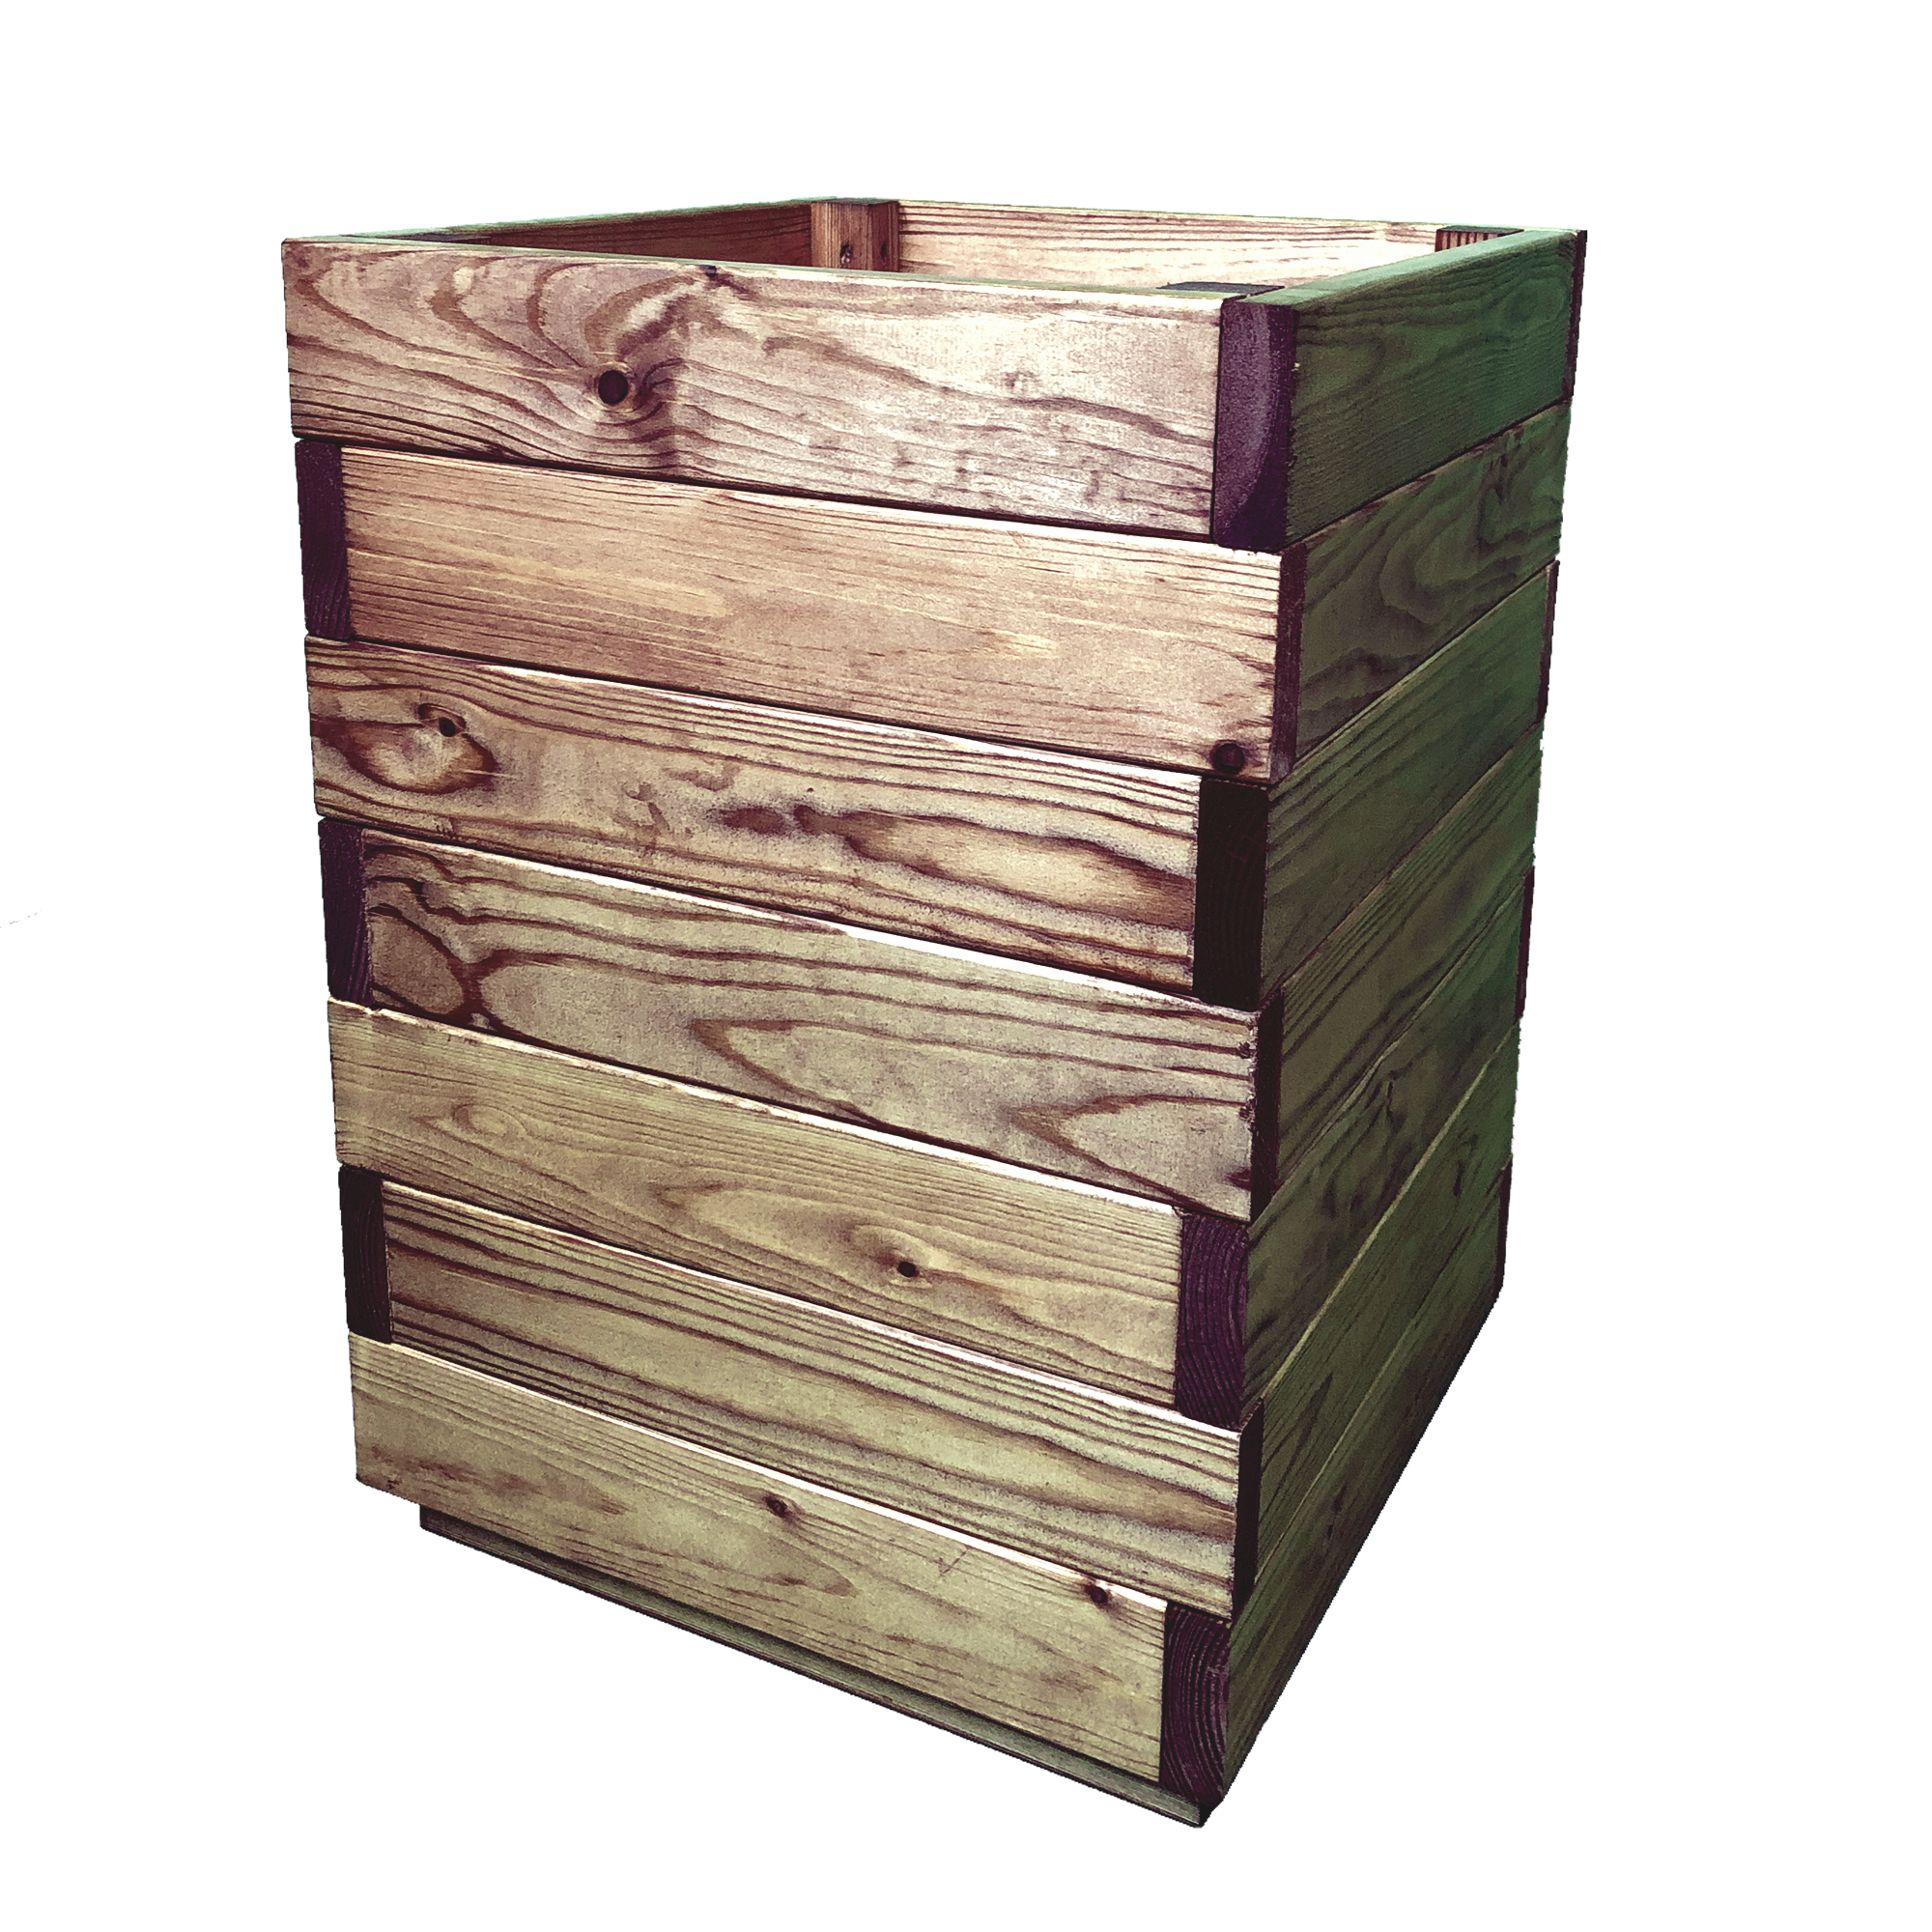 Premium Tall Square Wooden Garden Planter Extra Large